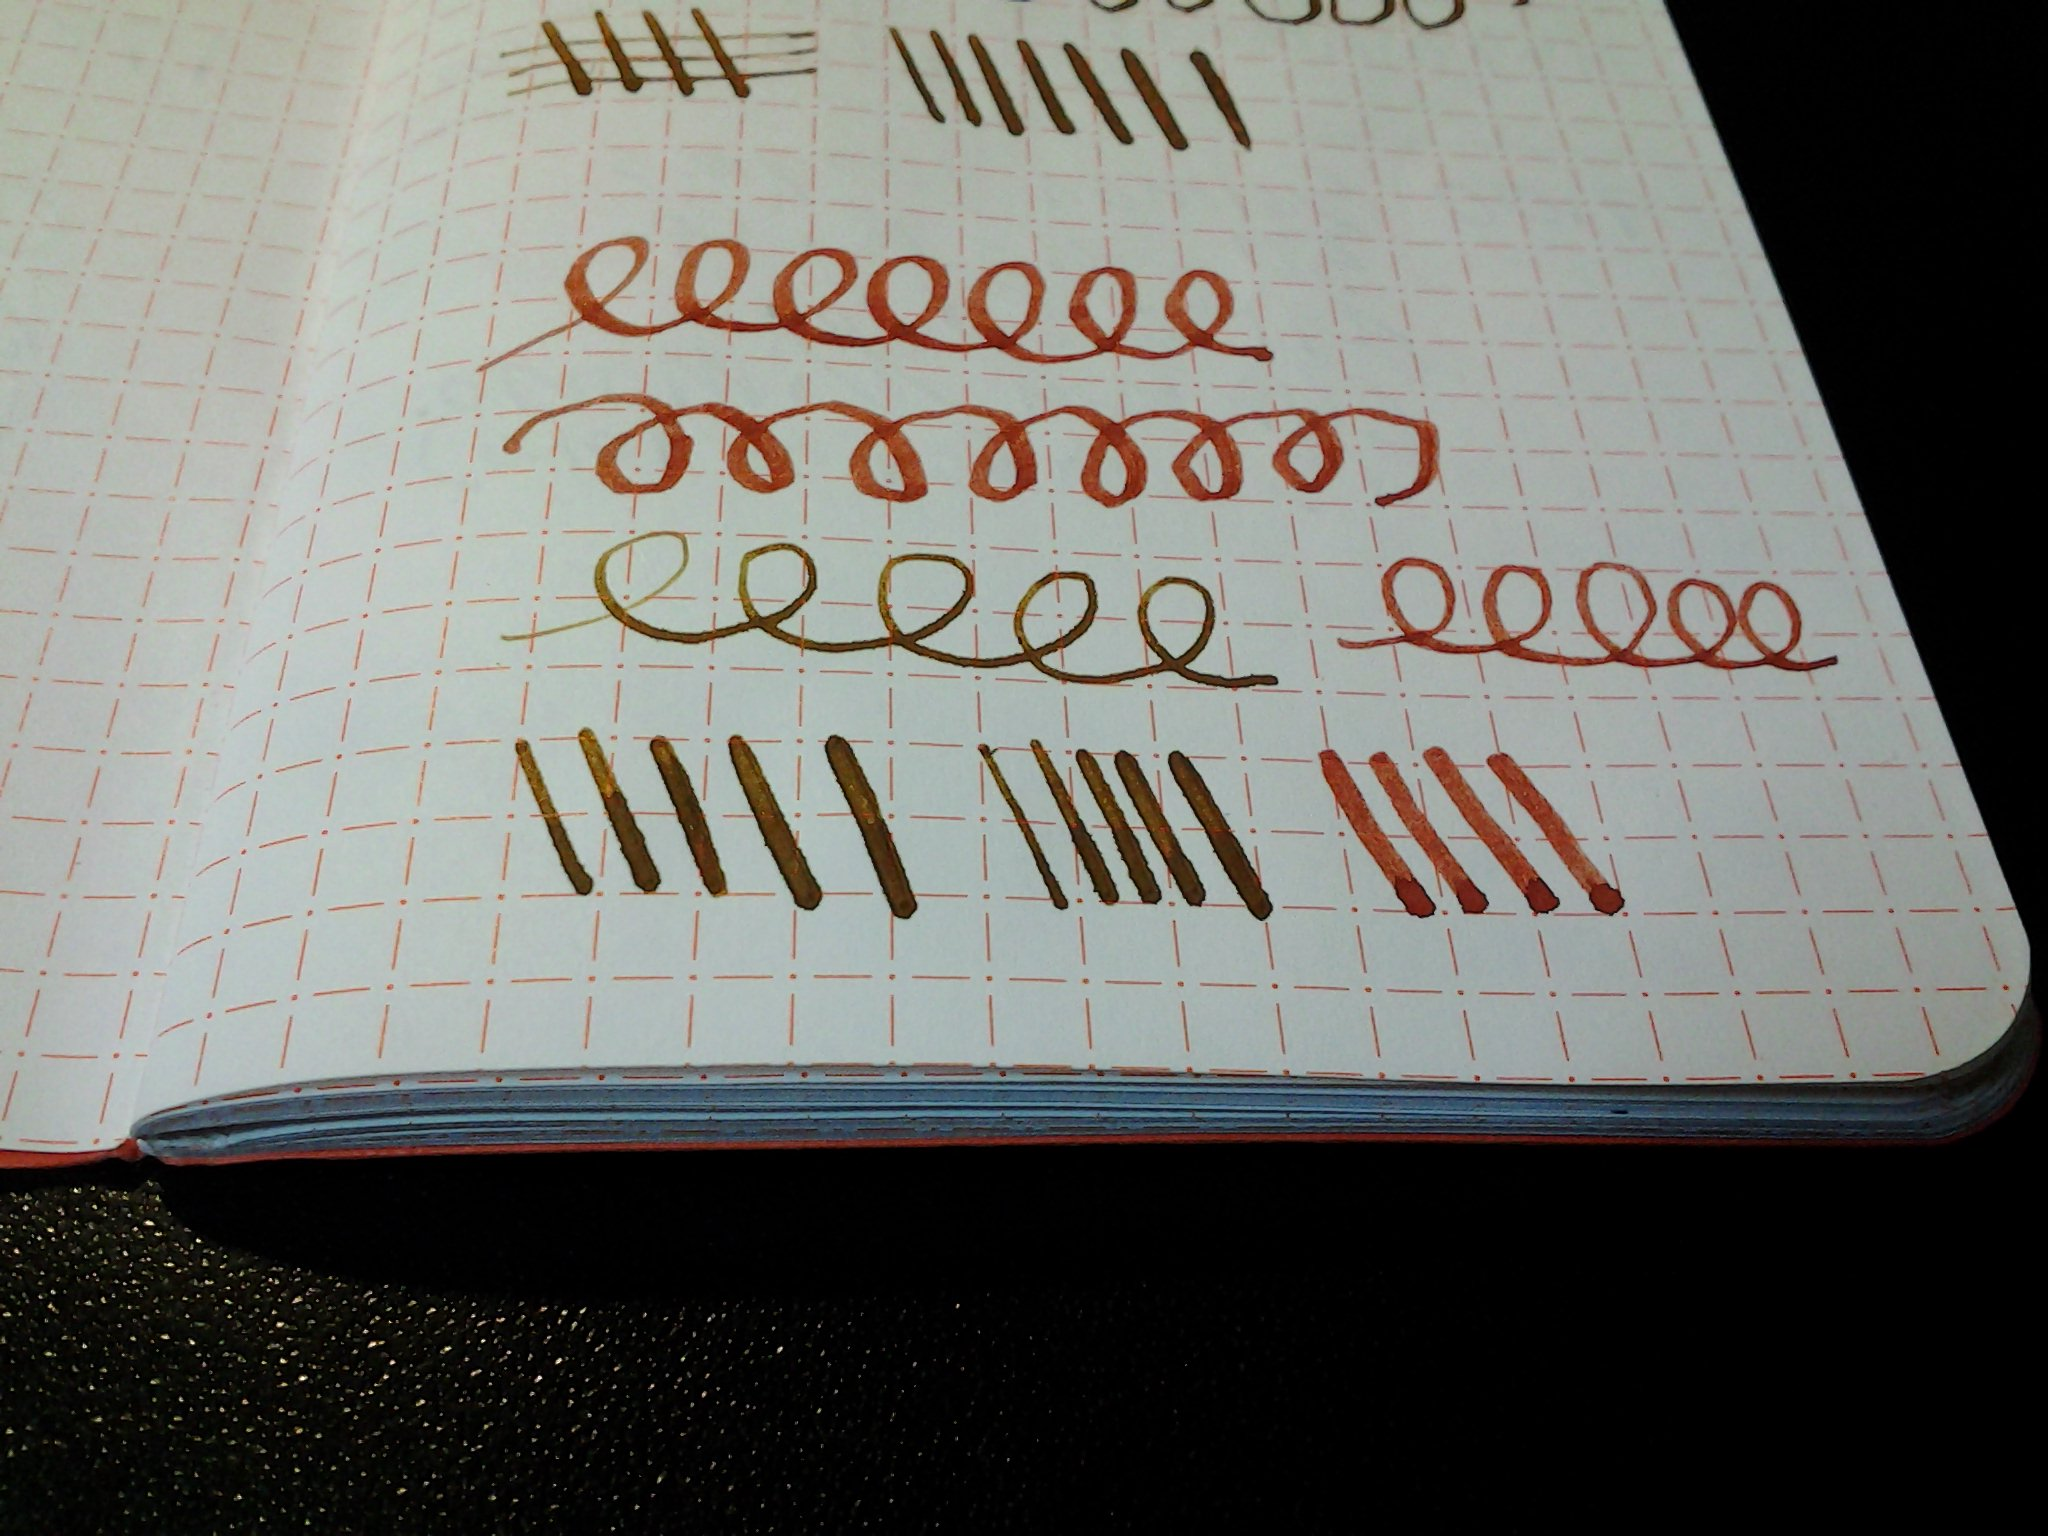 limited edition pen addict notebook end of book review mere blather a close up of the paper